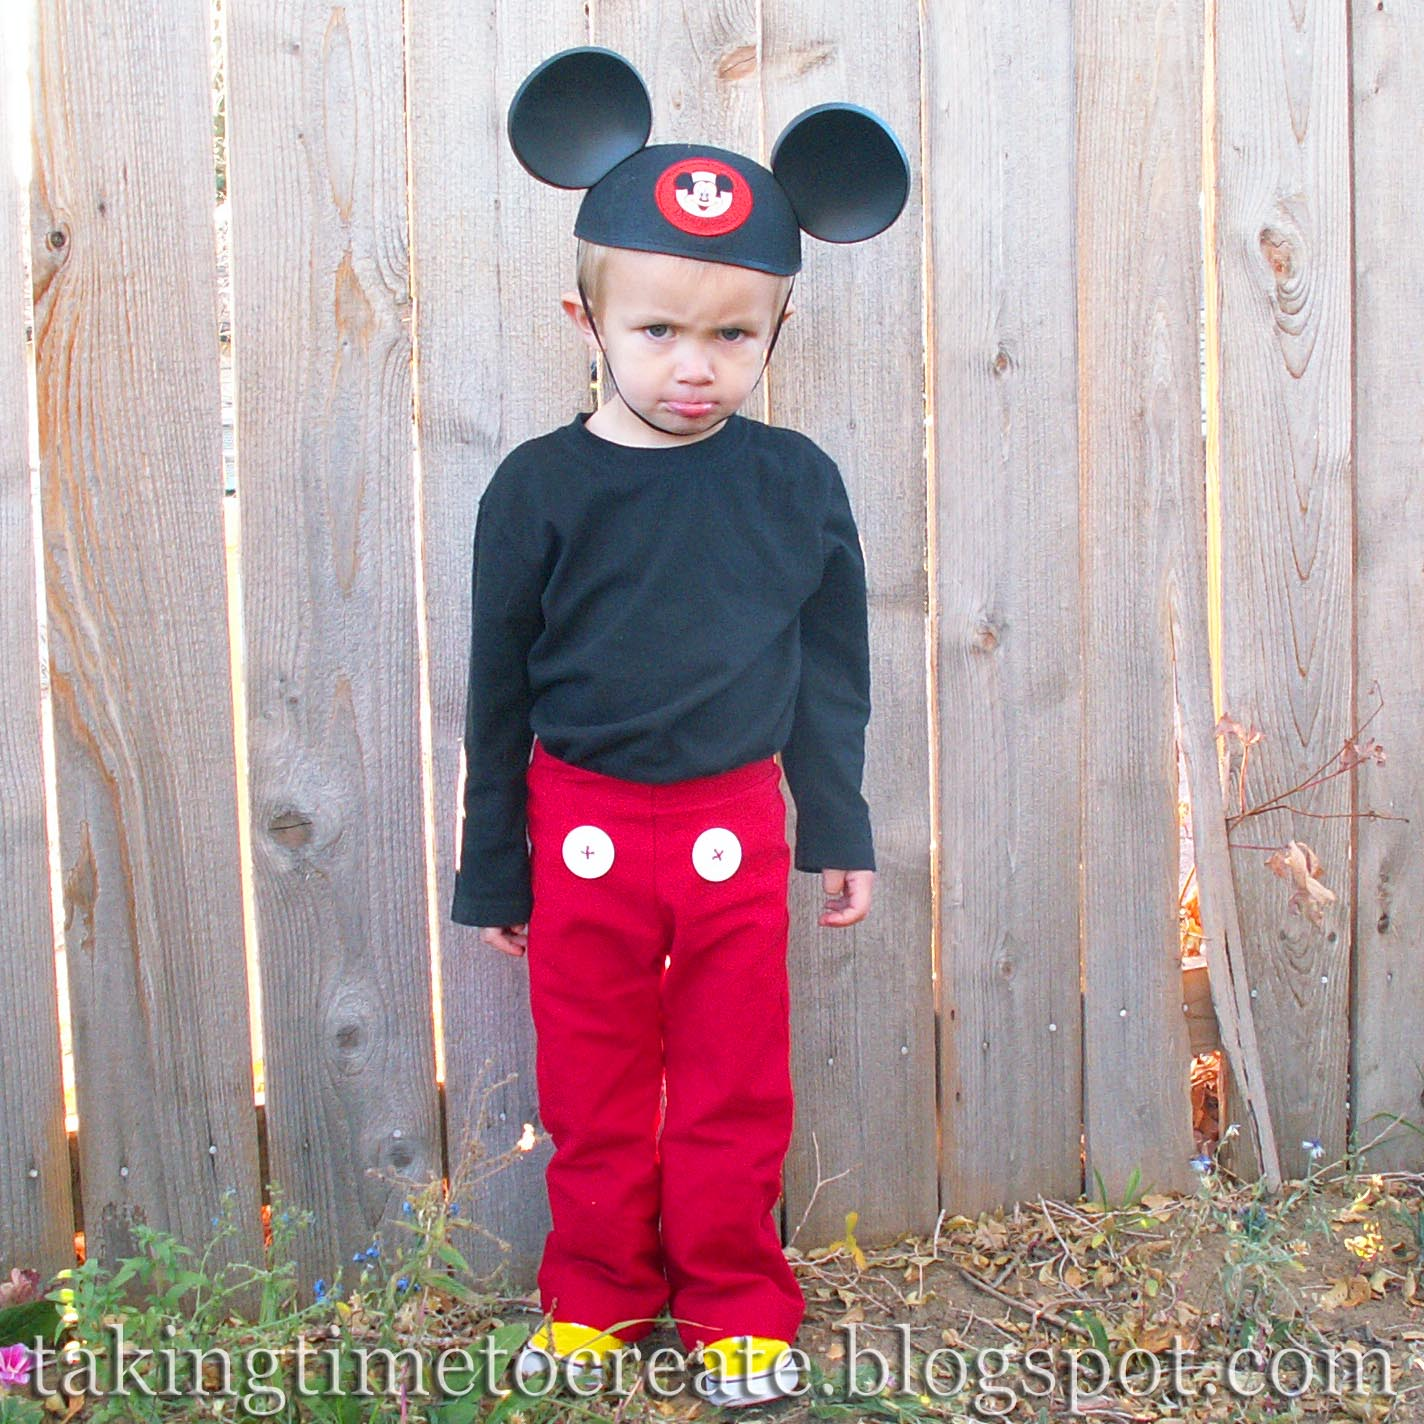 sc 1 st  Taking Time To Create & Taking Time To Create: A Simple Mickey Mouse Costume